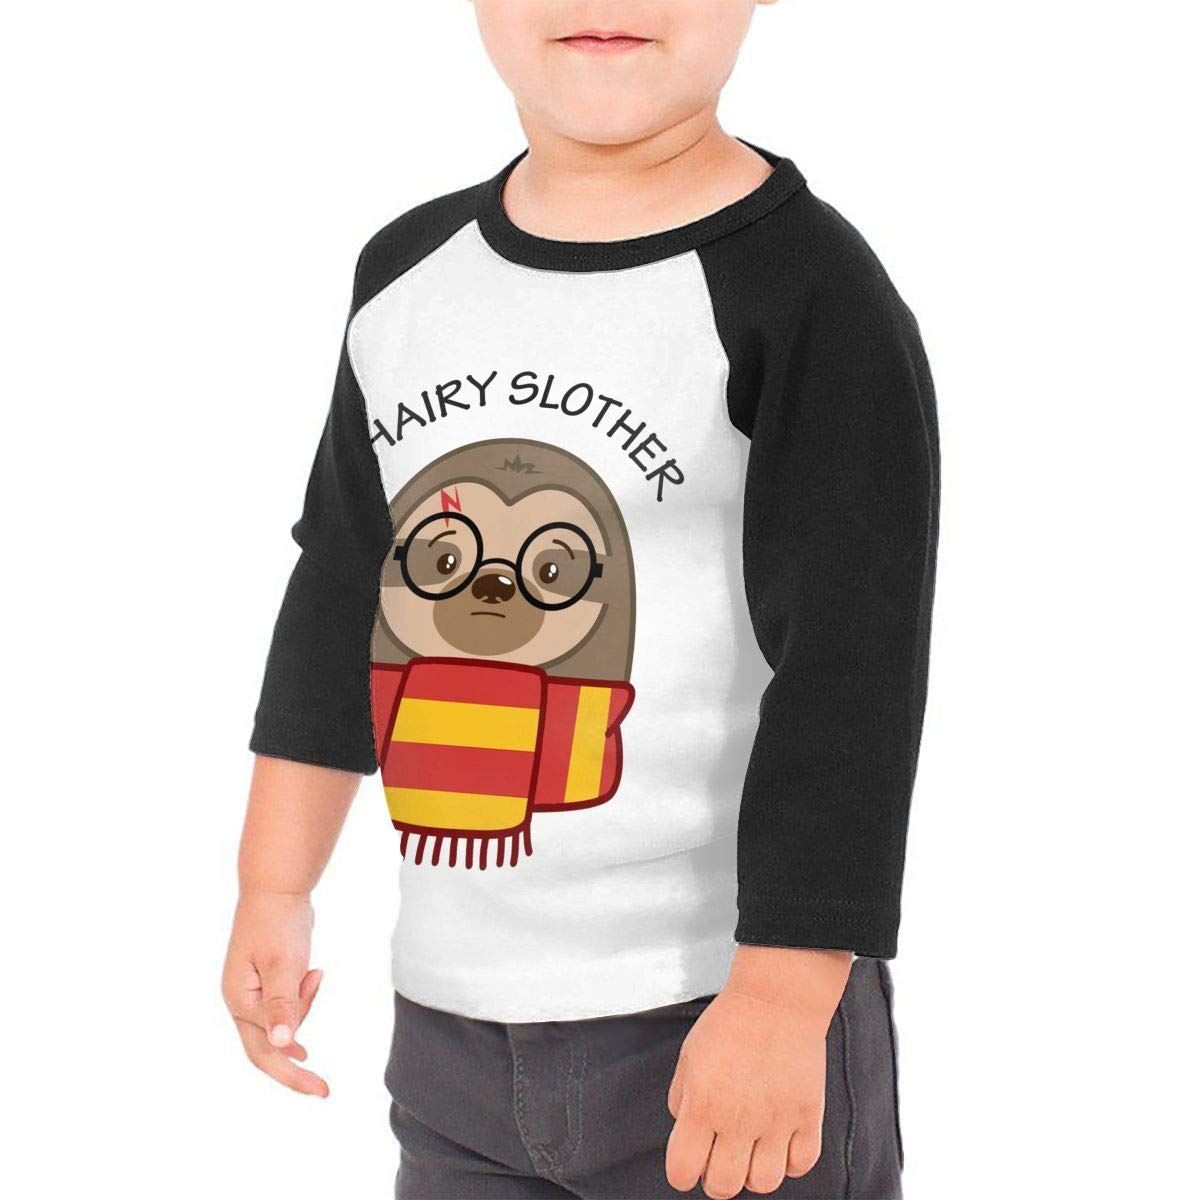 Manlee Hairy Slother Sloth Unisex 100/% Cotton Childrens 3//4 Sleeves T-Shirt Top Tees 2T~5//6T